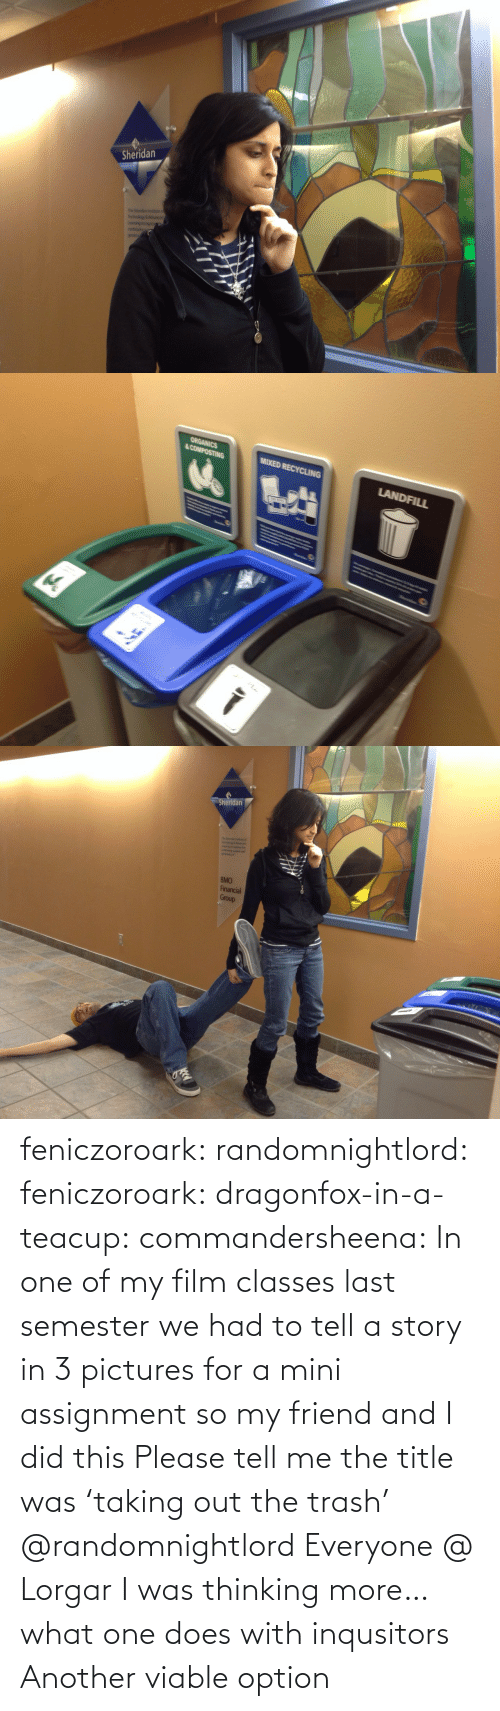 Film: feniczoroark:  randomnightlord:  feniczoroark:  dragonfox-in-a-teacup:  commandersheena: In one of my film classes last semester we had to tell a story in 3 pictures for a mini assignment so my friend and I did this   Please tell me the title was 'taking out the trash'   @randomnightlord    Everyone @ Lorgar   I was thinking more… what one does with inqusitors   Another viable option